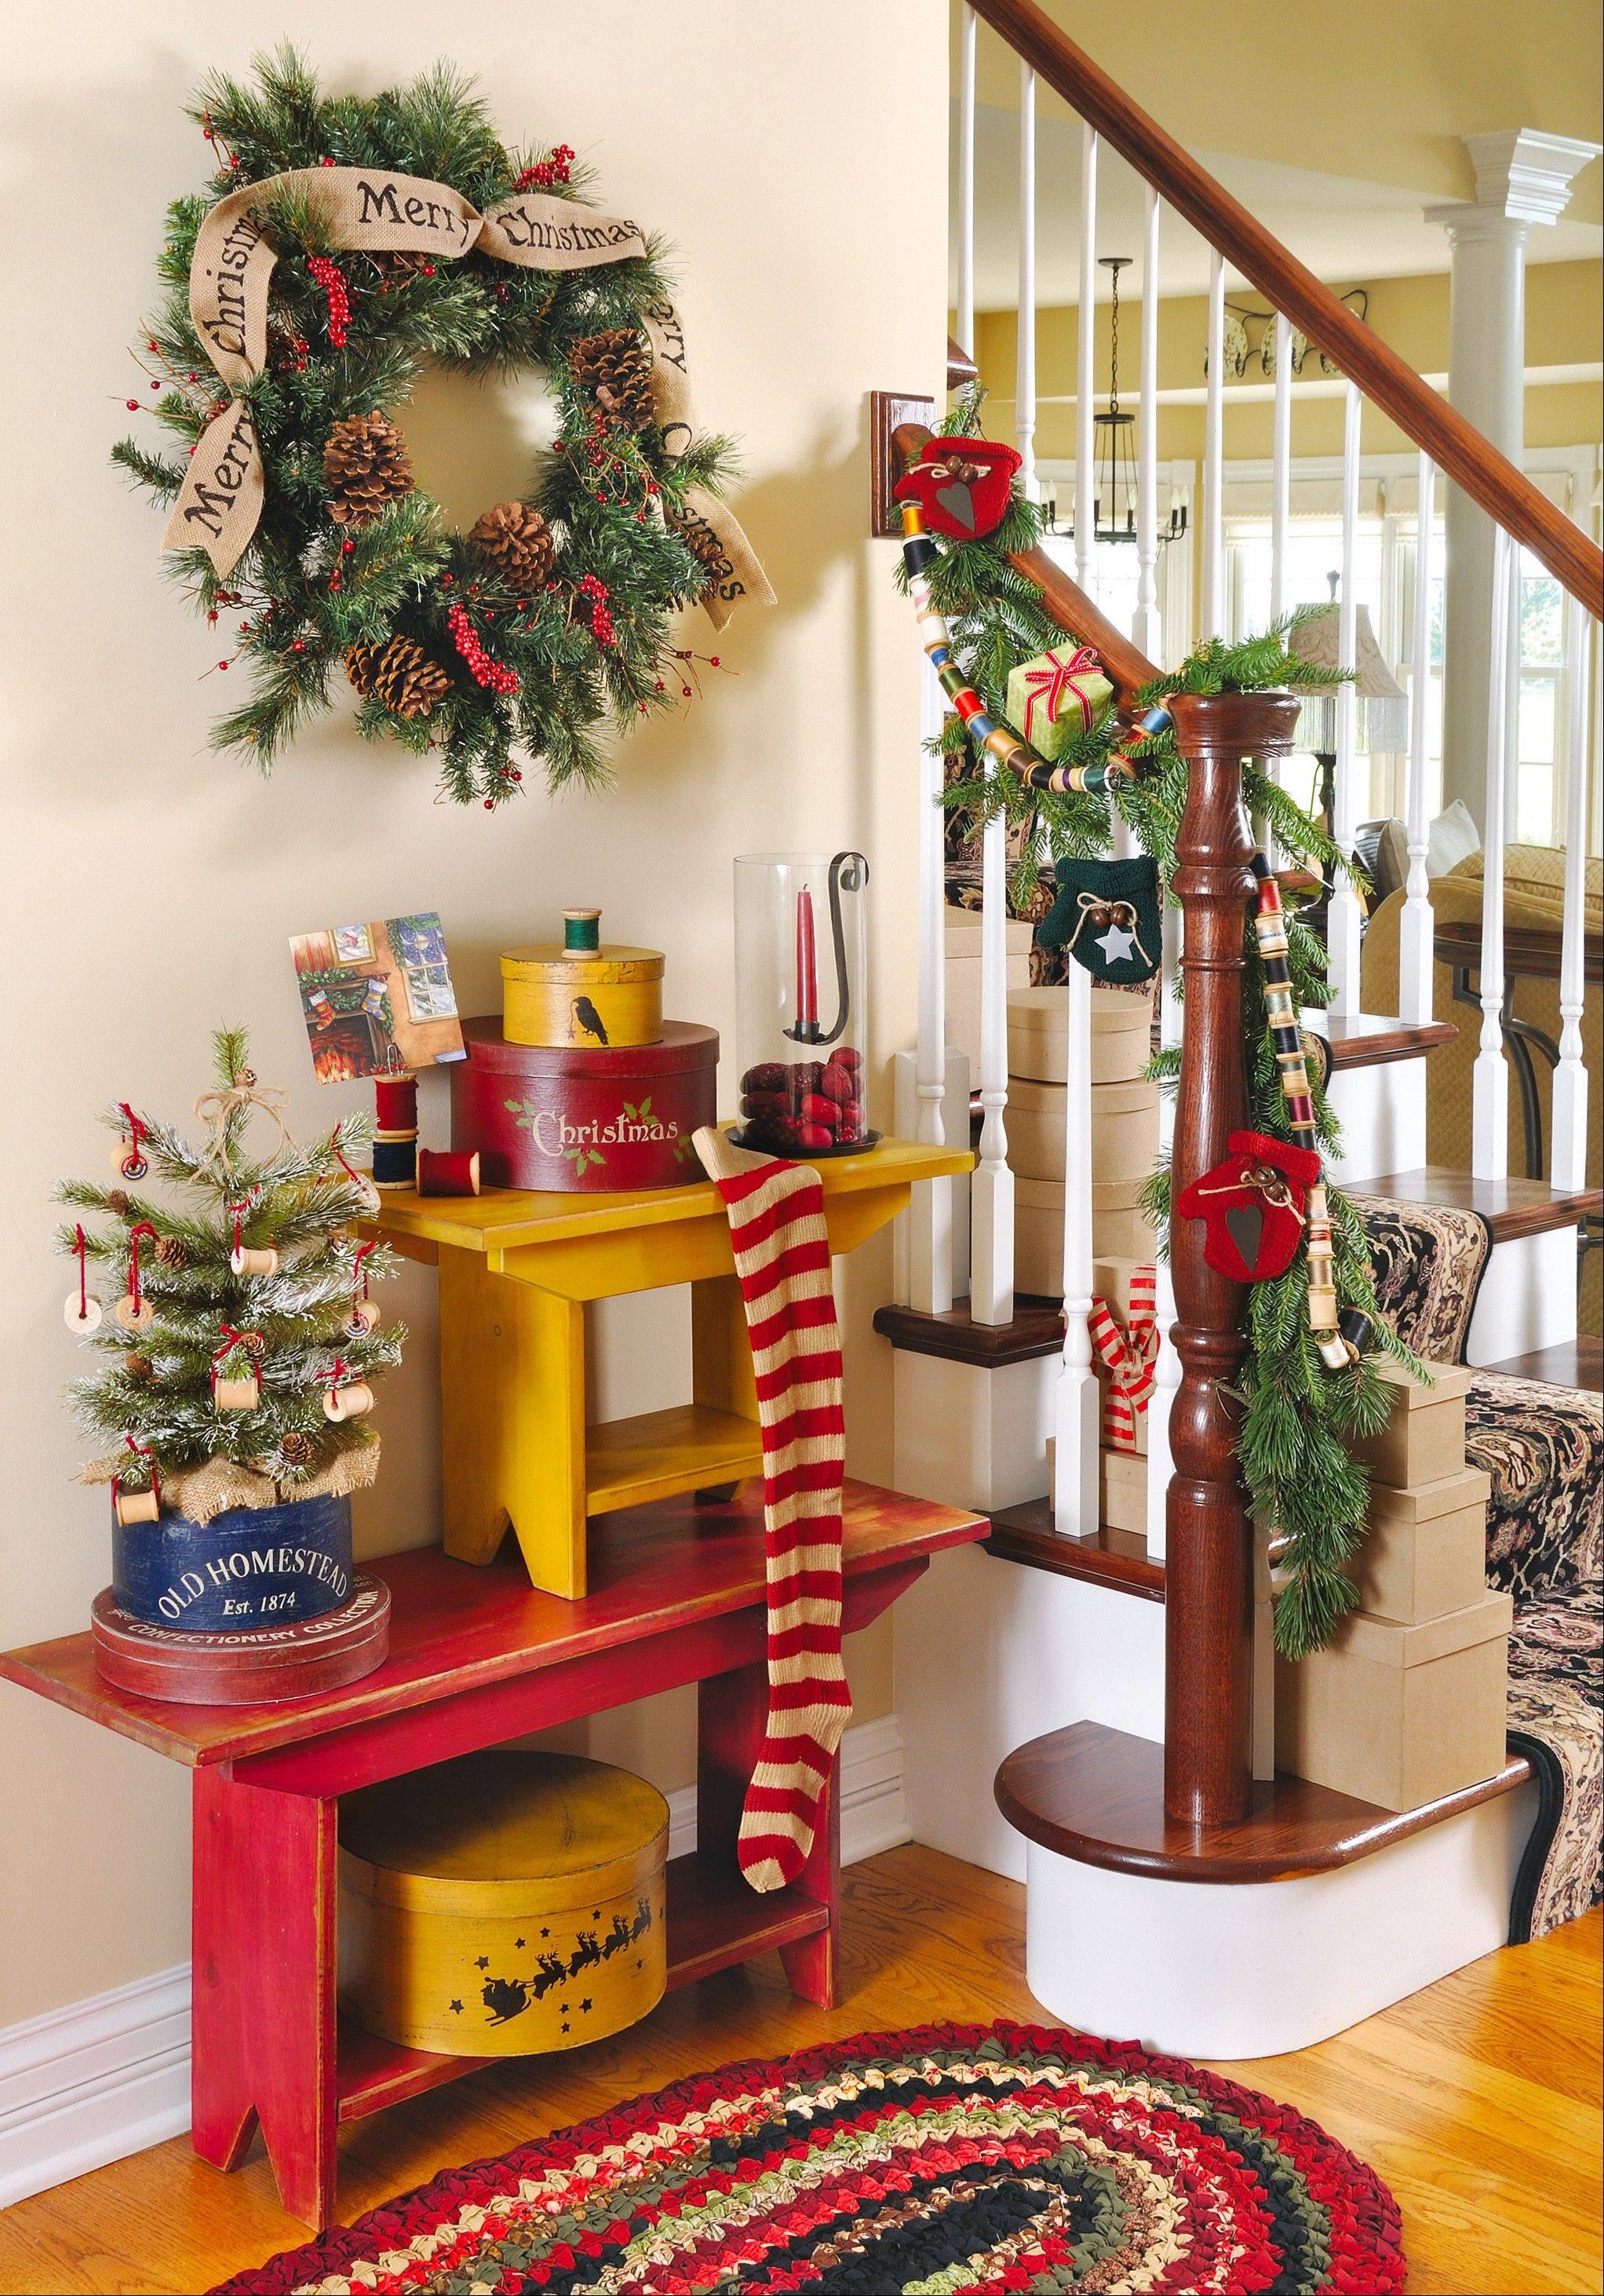 Spool party: For this foyer arrangement, the stylists centered the theme on a red-and-white-striped stocking.